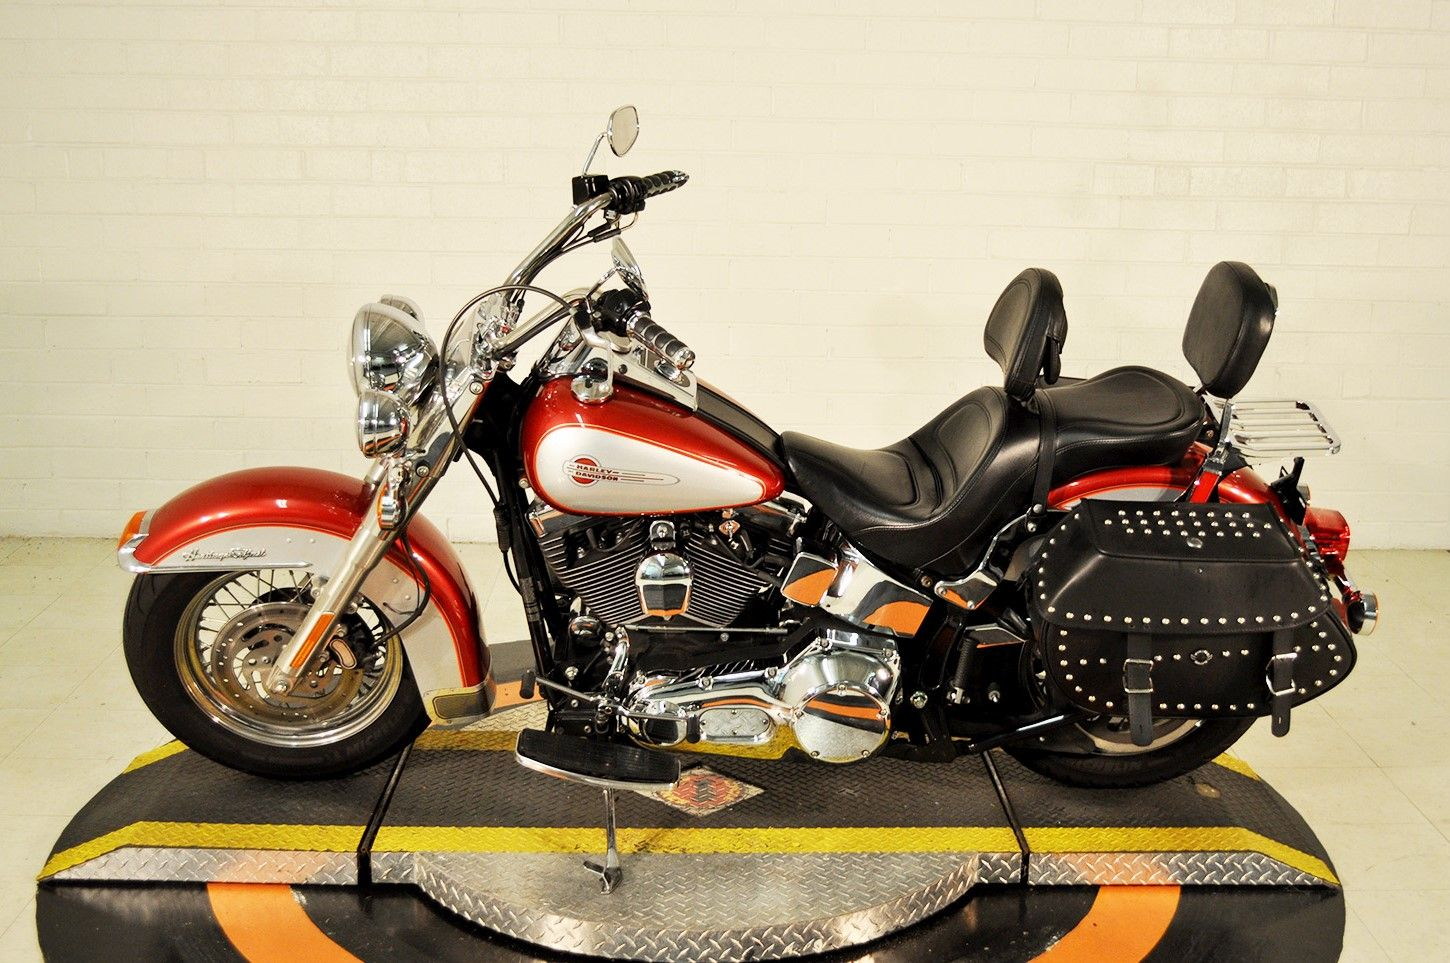 Pre-Owned 2004 Harley-Davidson Heritage Softail Classic